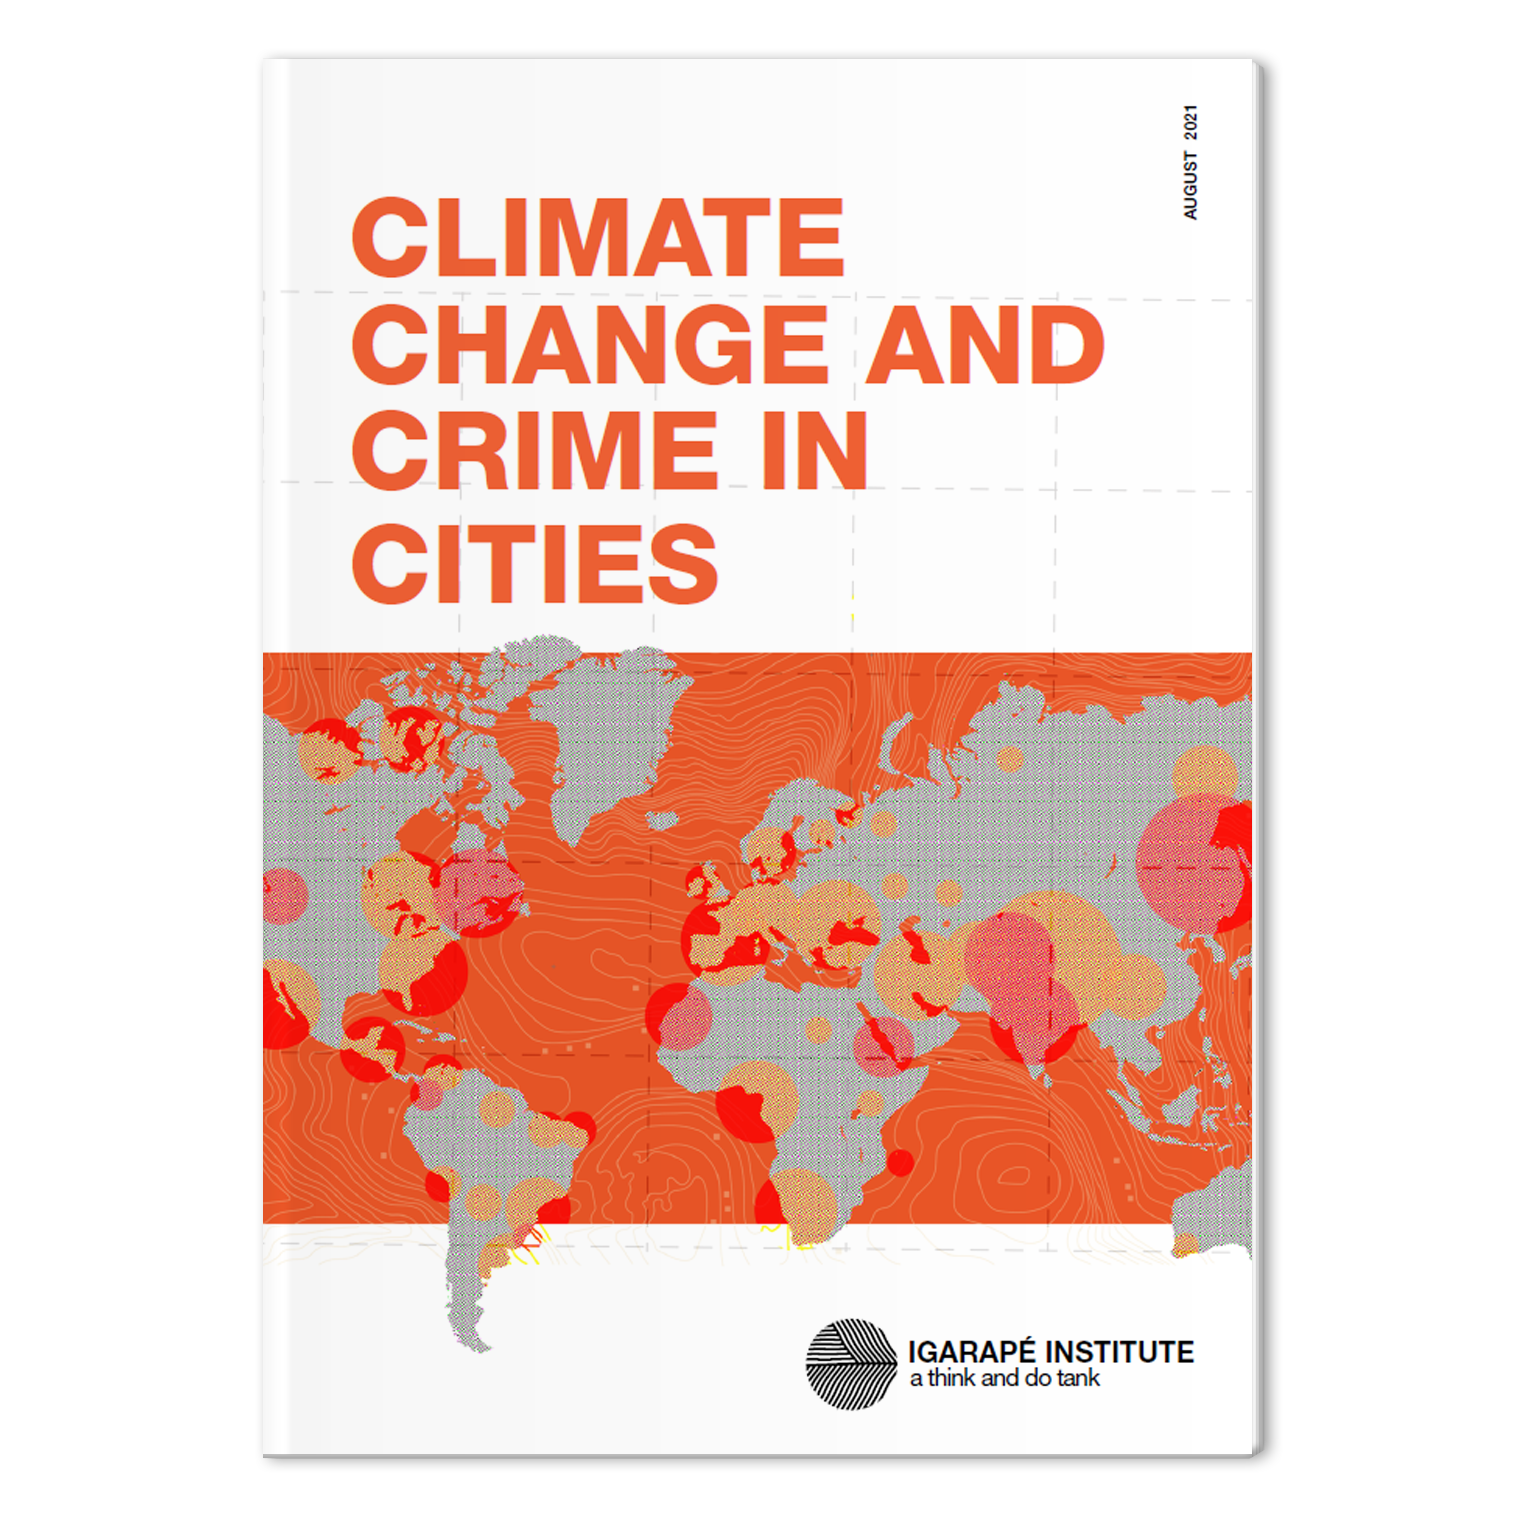 Climate change and crime in cities